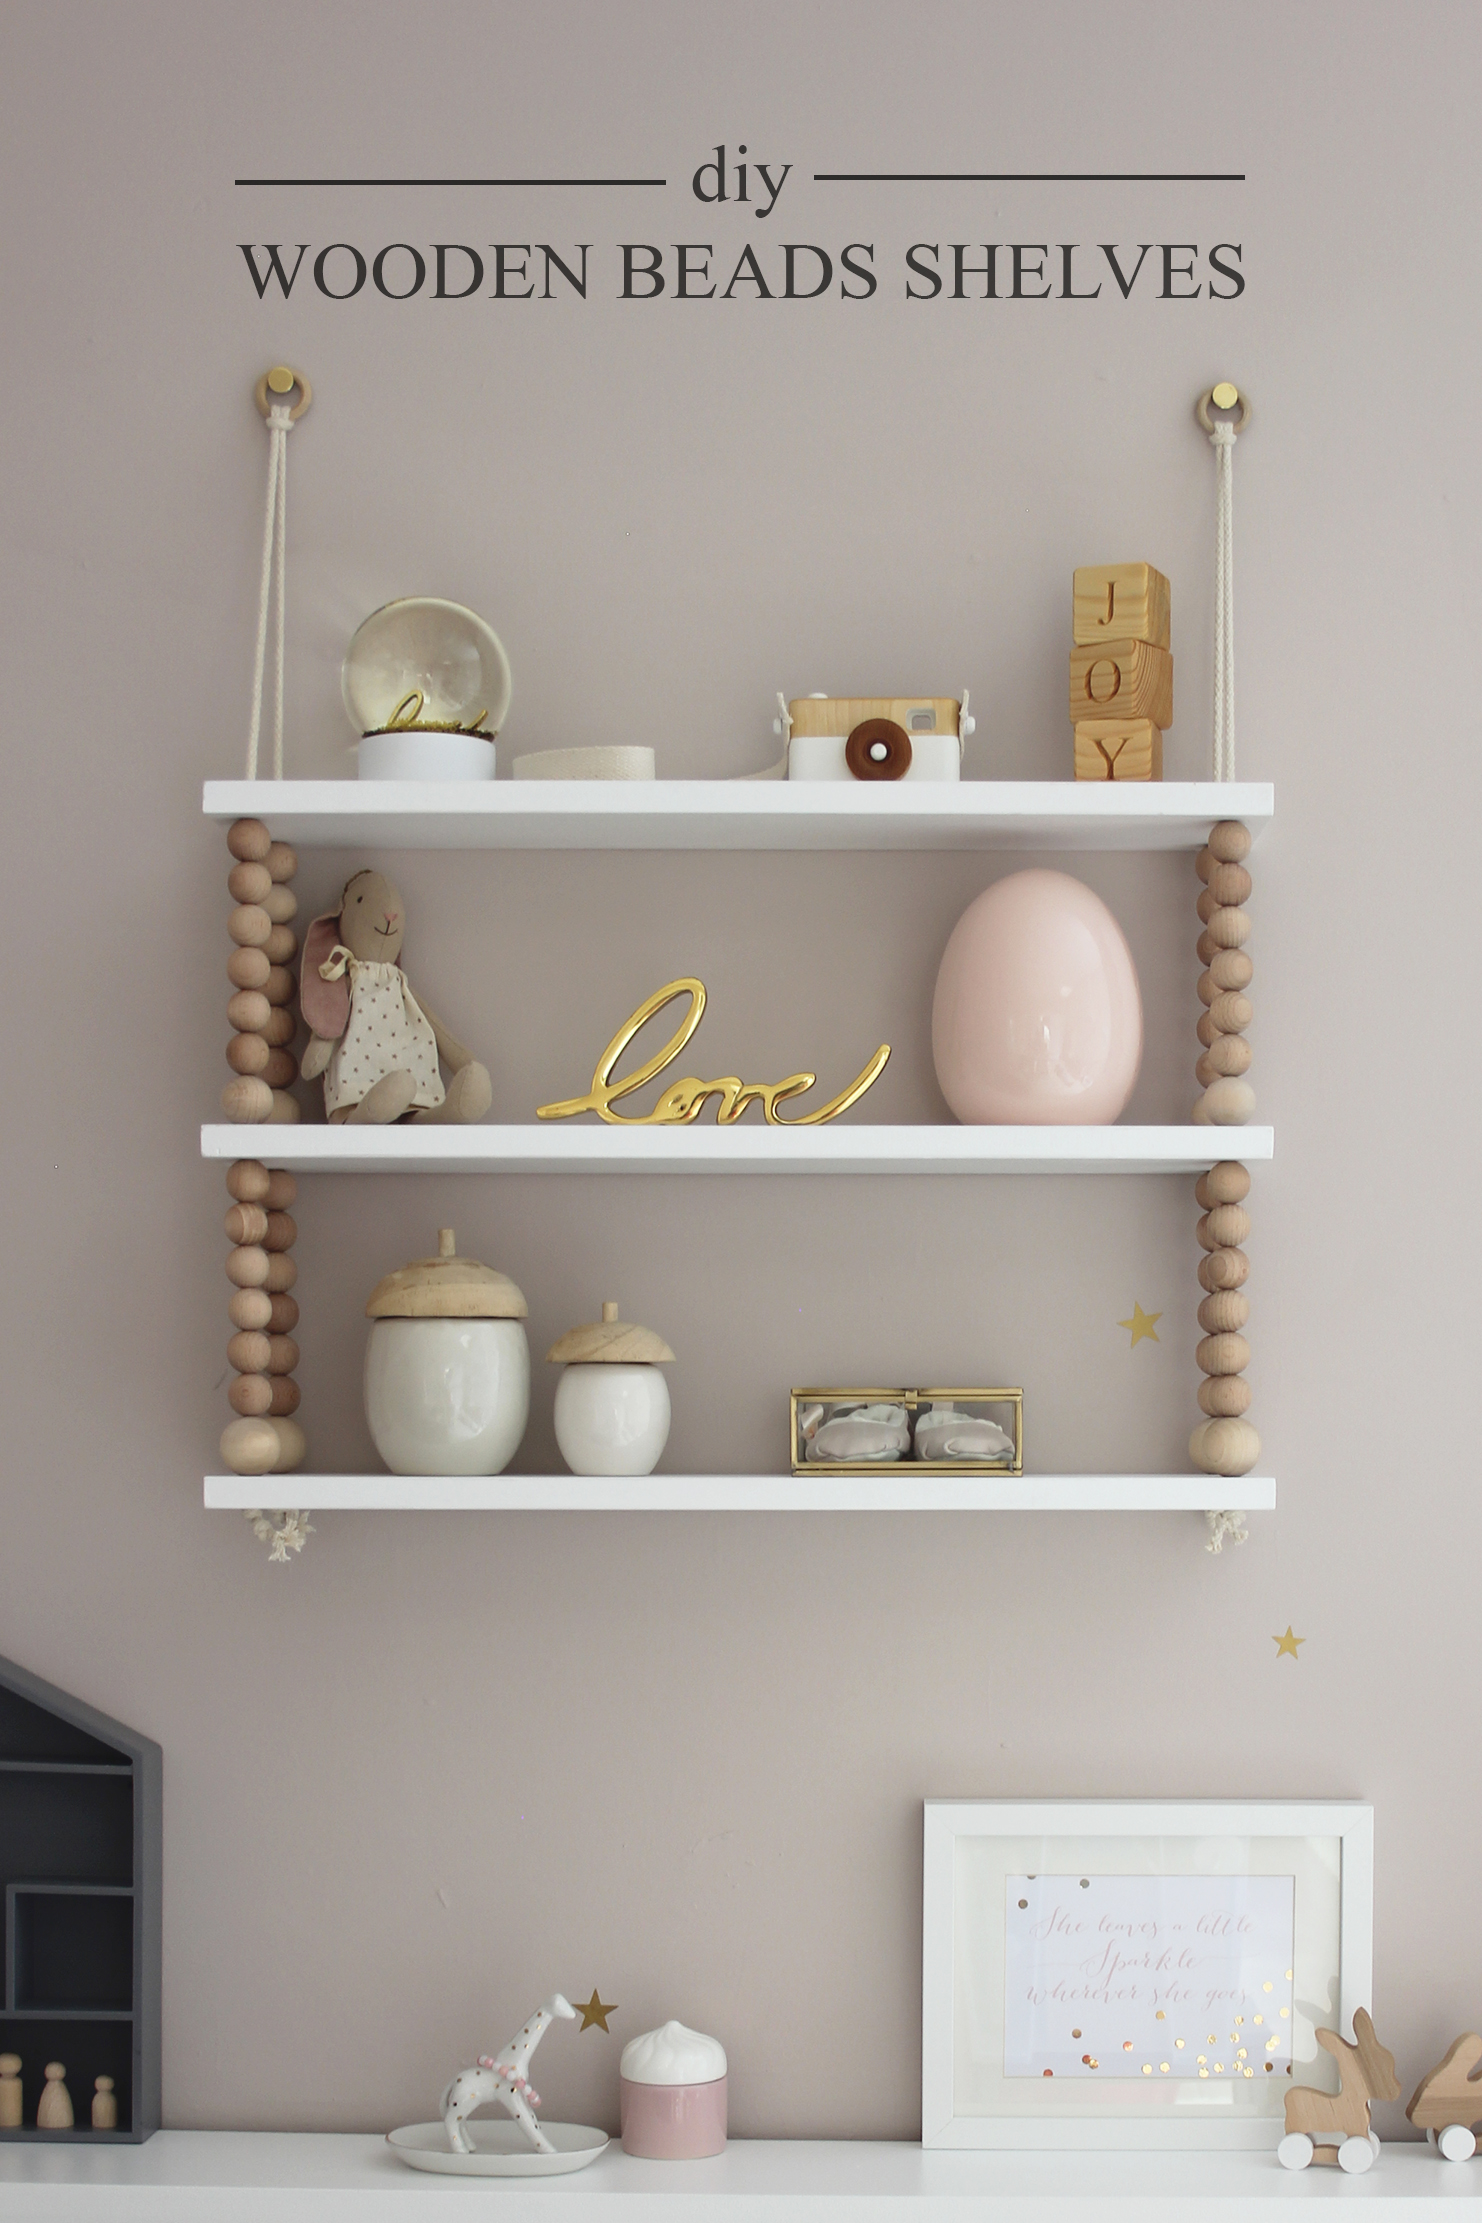 Preciously Me blog : DIY - Wooden Beads Shelves